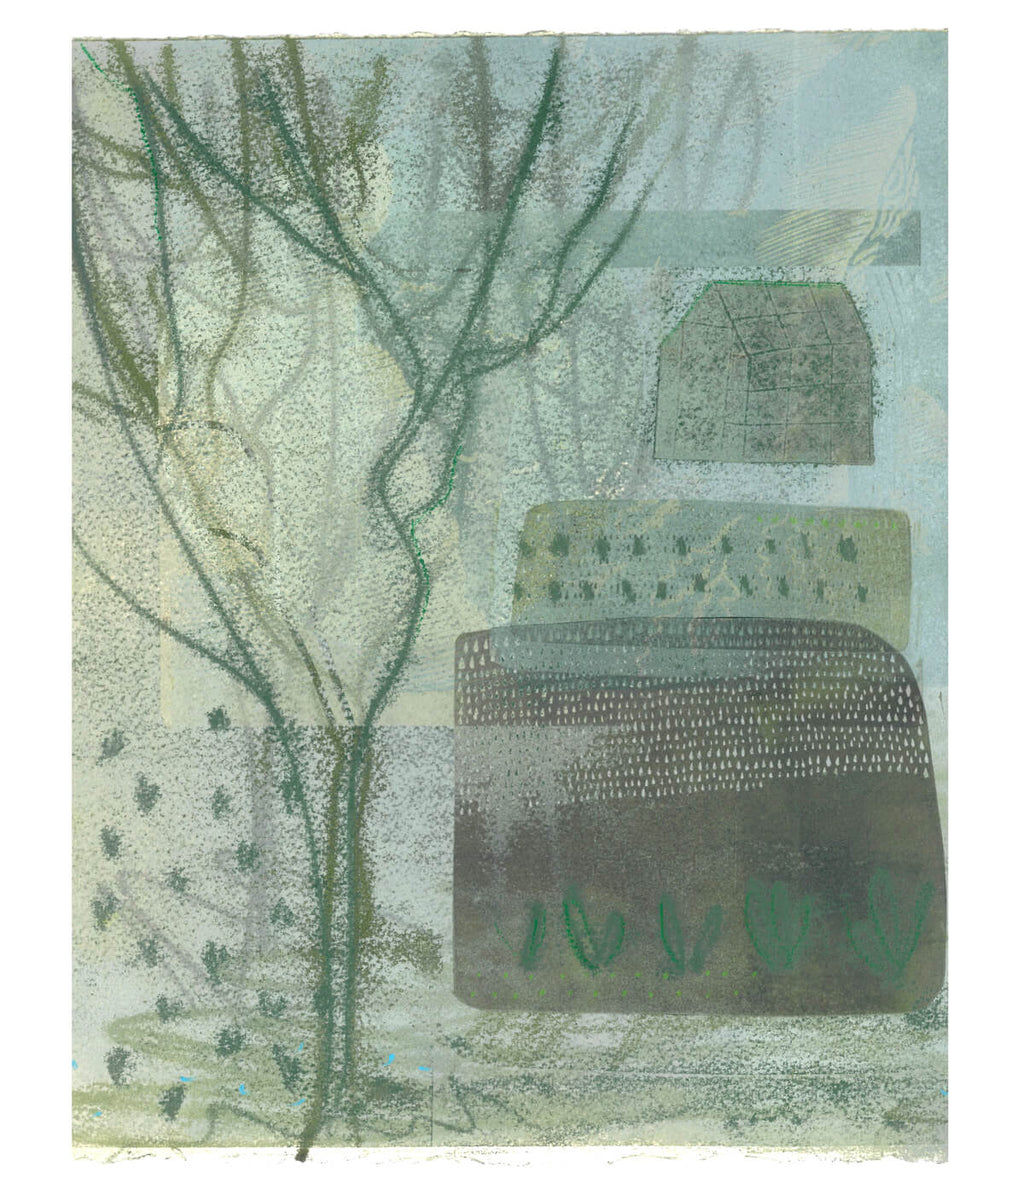 Shortest Day, a monotype print by Sarah Kirby